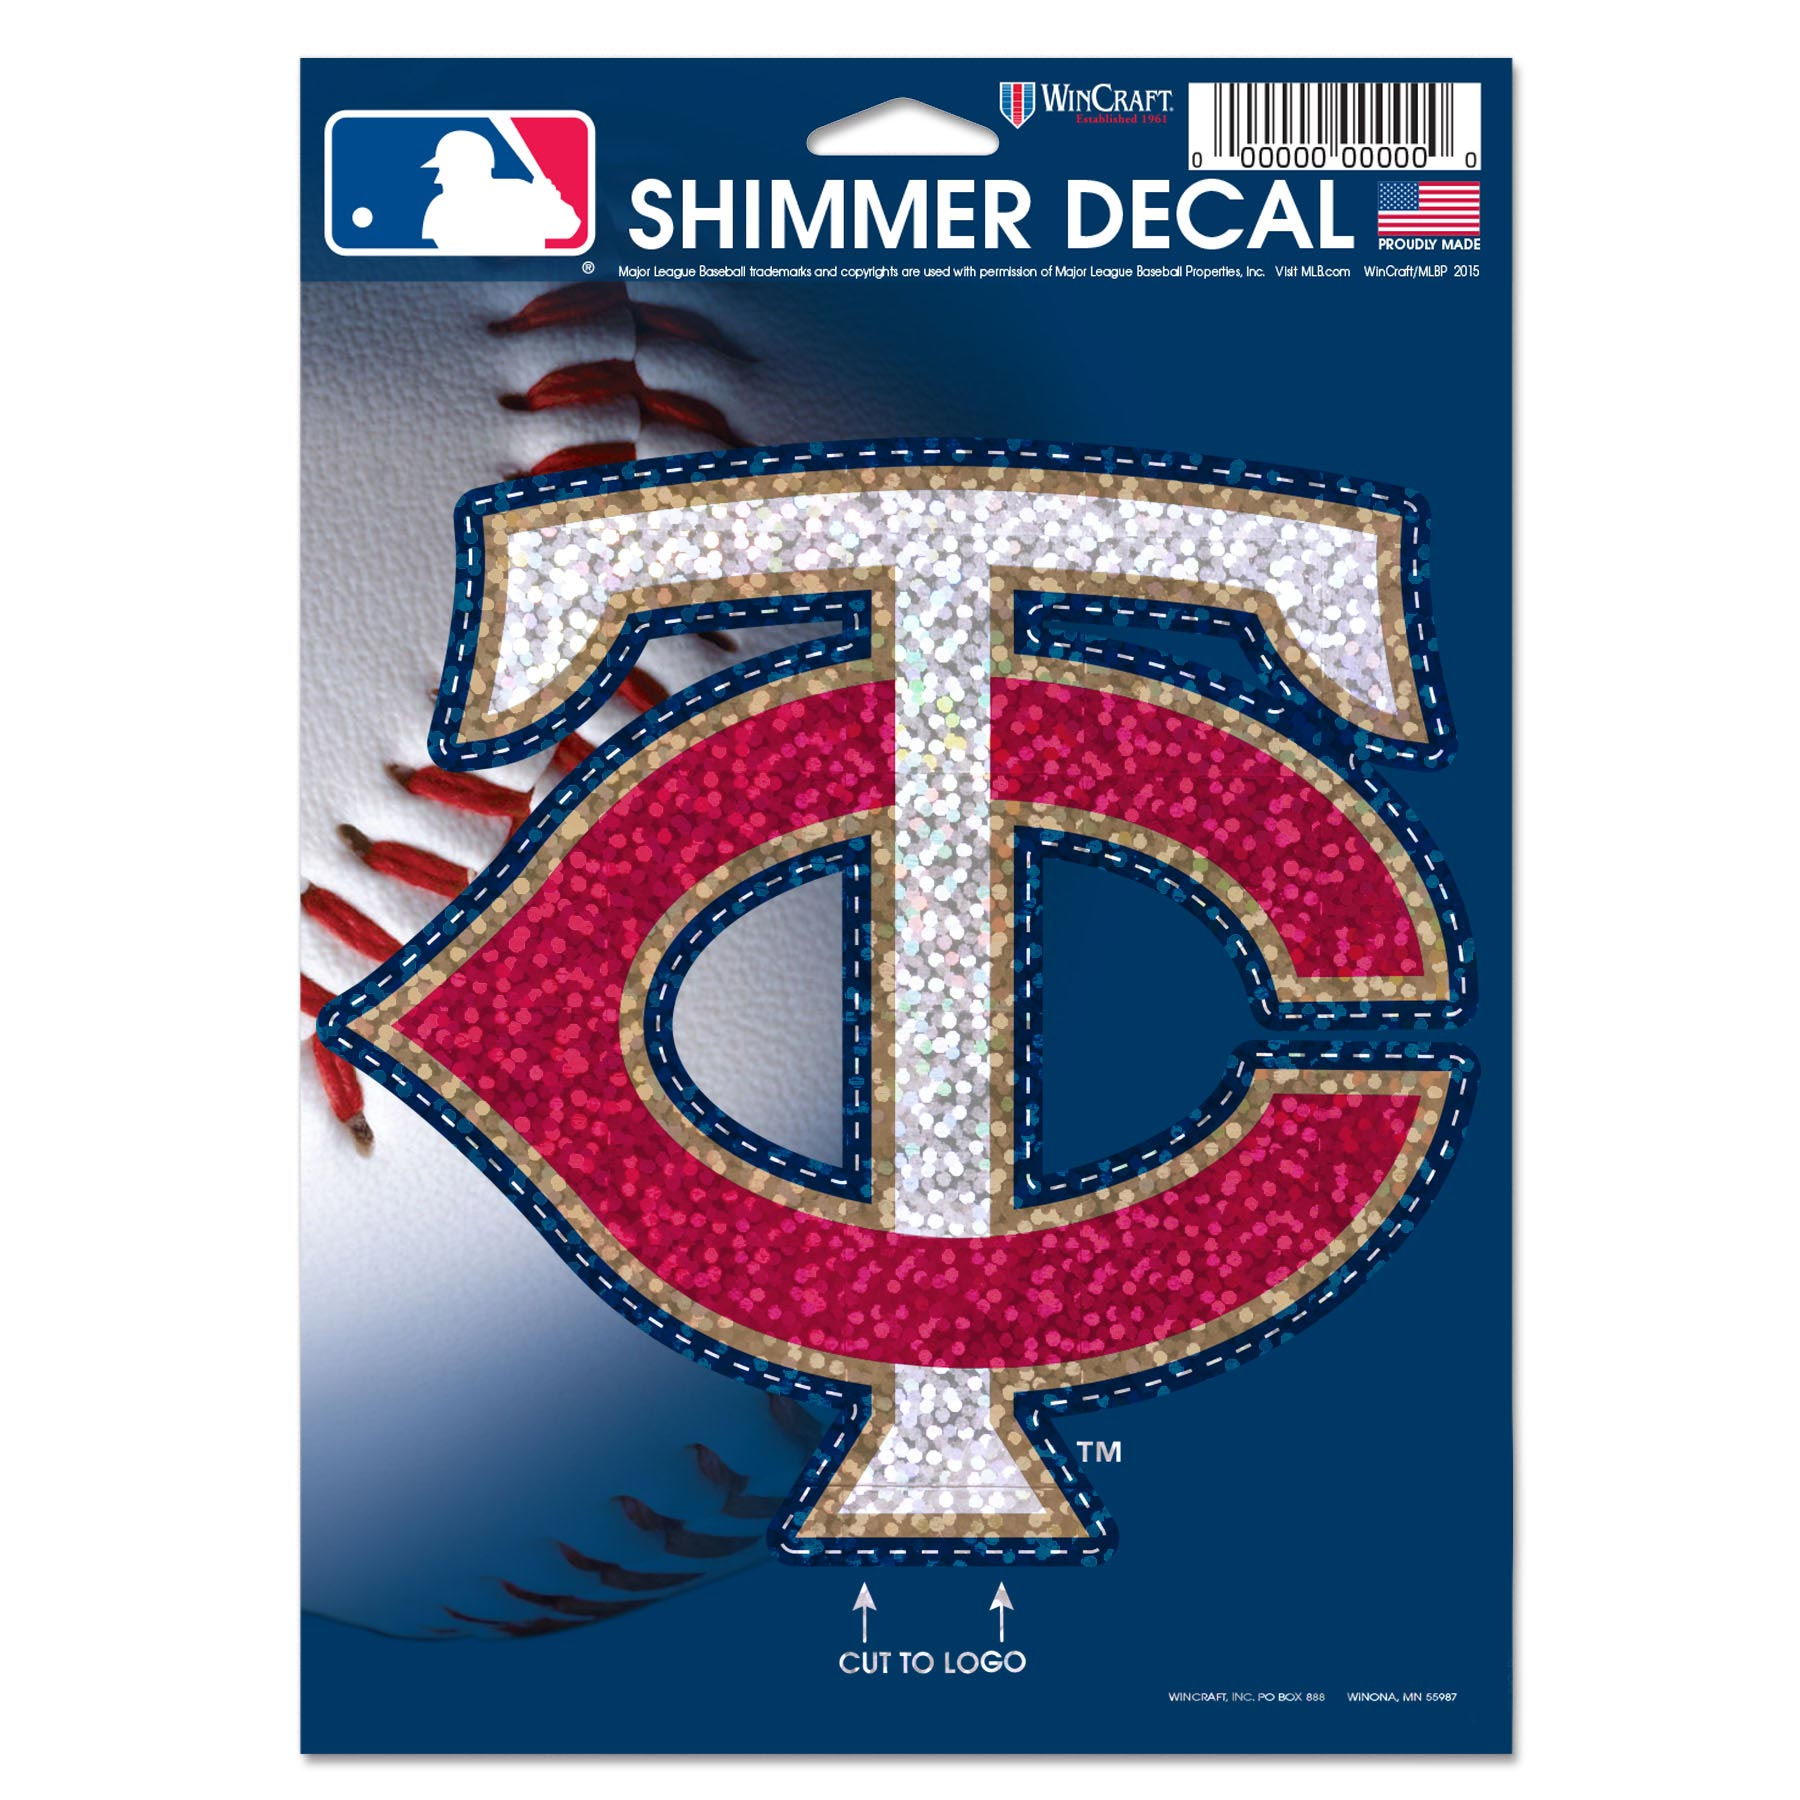 """Minnesota Twins WinCraft 5"""" x 7"""" Shimmer Decal - No Size"""